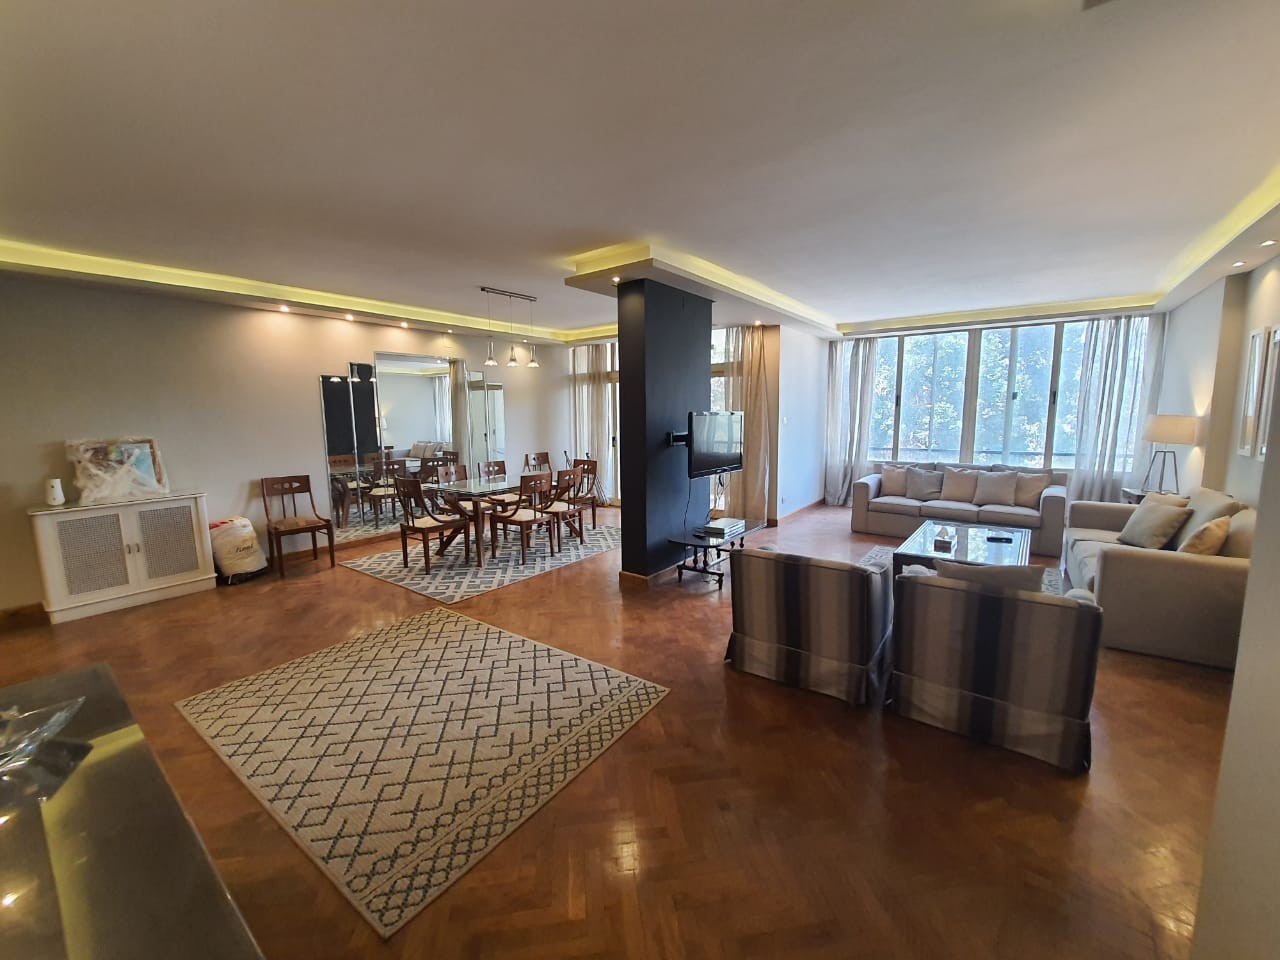 Modern Furnished Apartment For Rent In Sarayat El Maadi - 4900 Featured Image